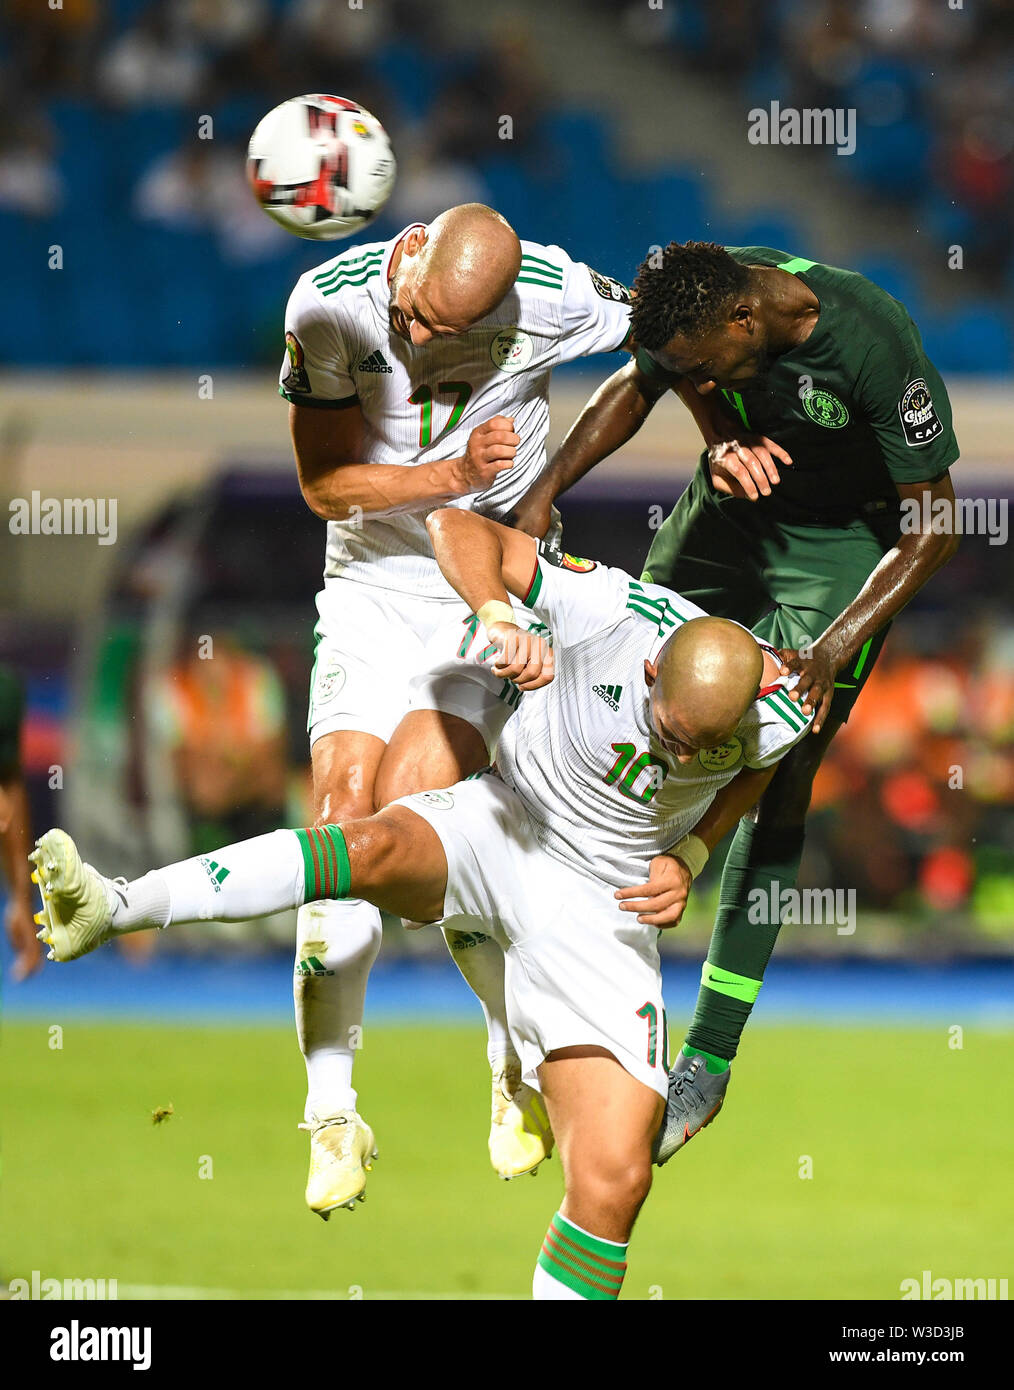 Cairo, Nigeria during the semifinal match between Algeria and Nigeria at the 2019 Africa Cup of Nations in Cairo. 14th July, 2019. Sofiane Feghouli (down) and Adlane Guedioura (L, up) of Algeria compete with Wilfred Ndidi (R, up) of Nigeria during the semifinal match between Algeria and Nigeria at the 2019 Africa Cup of Nations in Cairo, Egypt on July 14, 2019. Credit: Li Yan/Xinhua/Alamy Live News - Stock Image